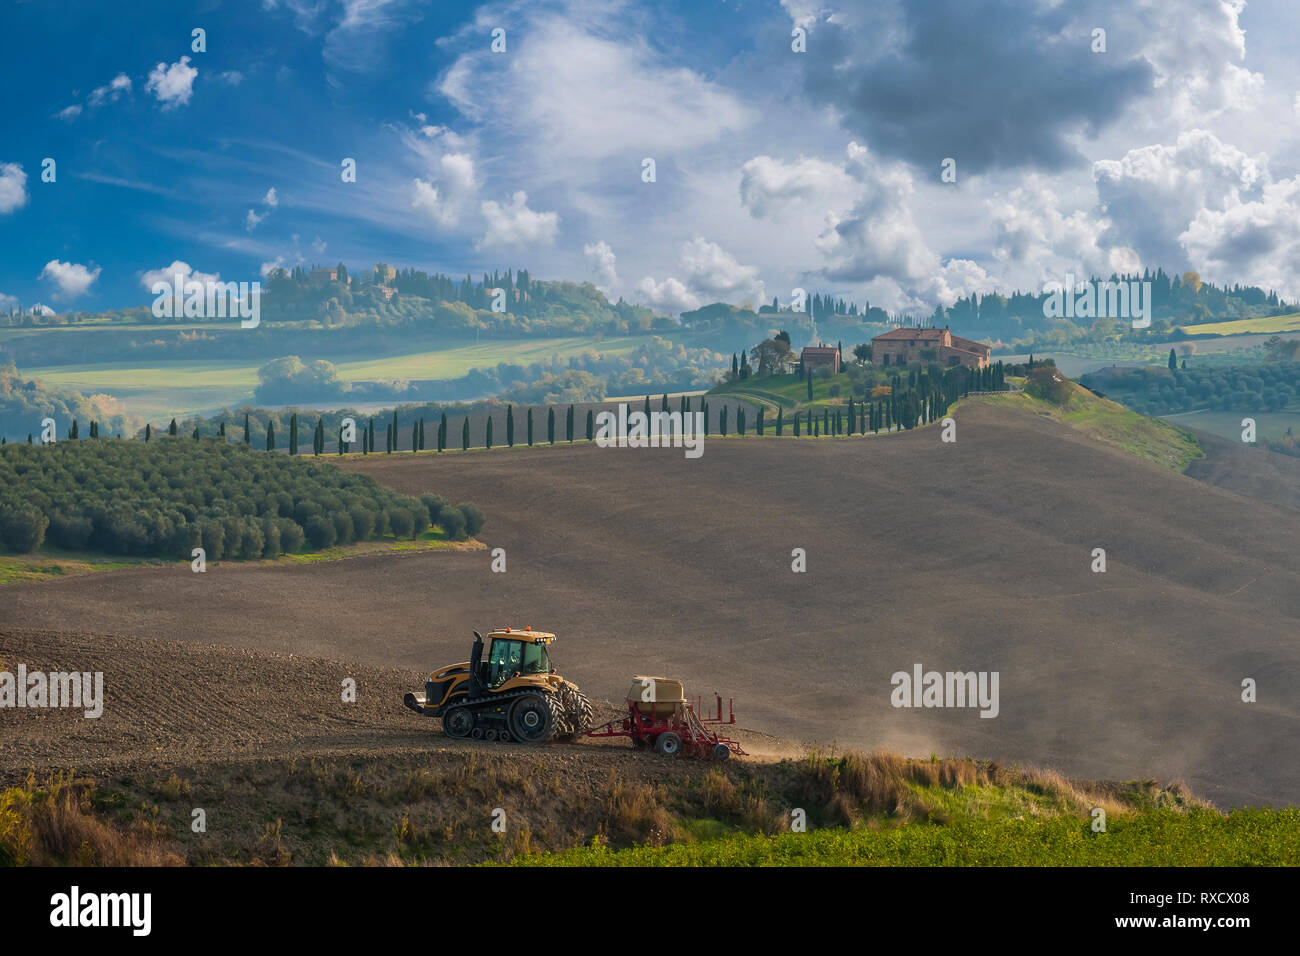 Agricultural landscape with tractor cultivates a field. Beautiful farmland, husbandry view - Stock Image